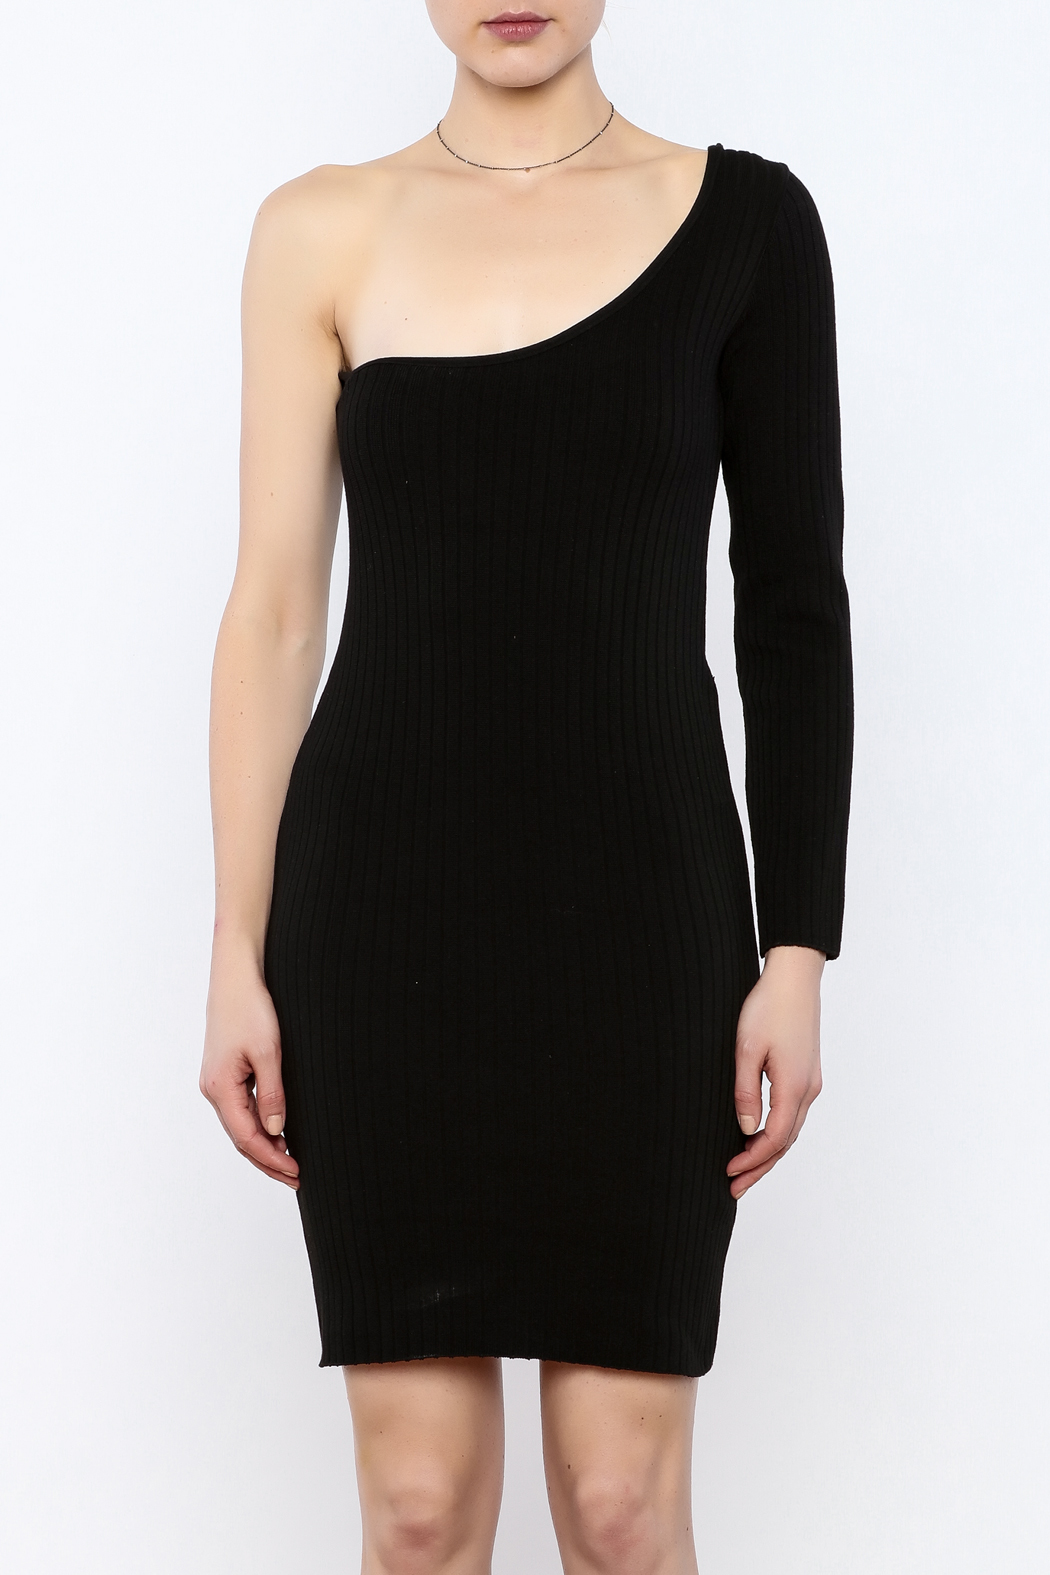 Cleo Black Knit Dress - Side Cropped Image